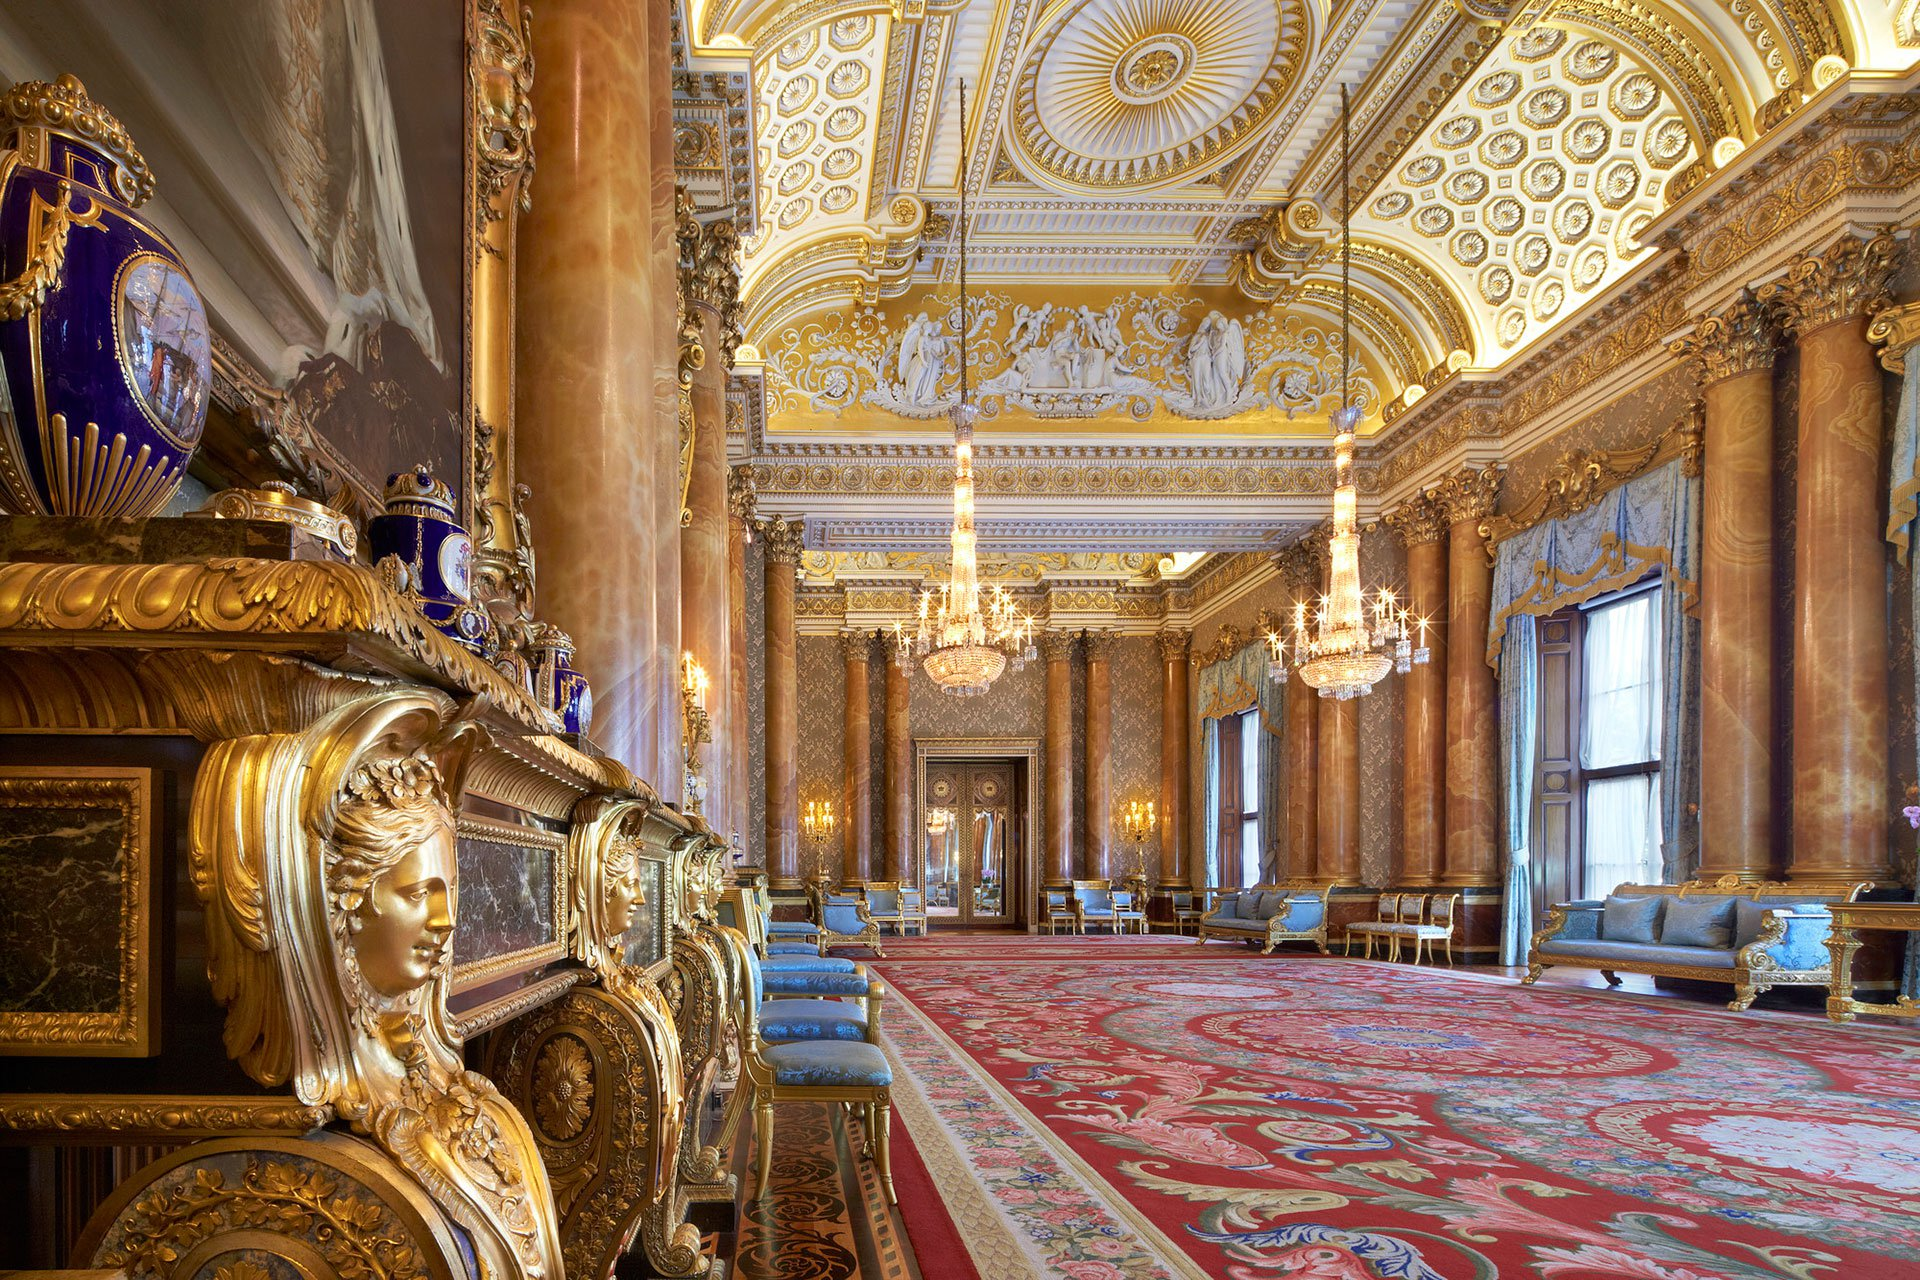 George IV: Art & Spectacle & The Royal Mews